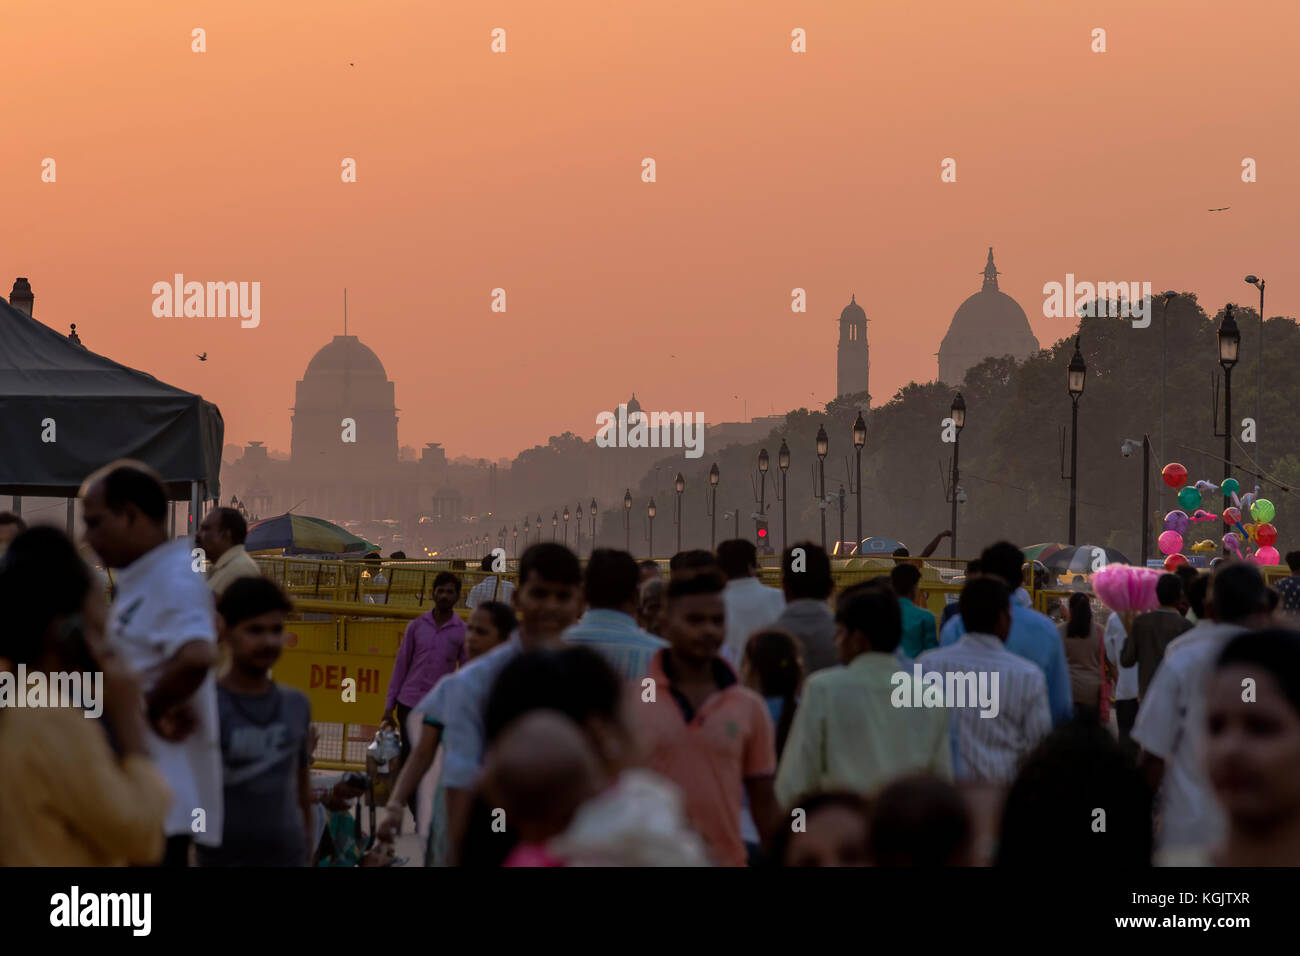 Sunset over the government buildings, New Delhi, India - Stock Image